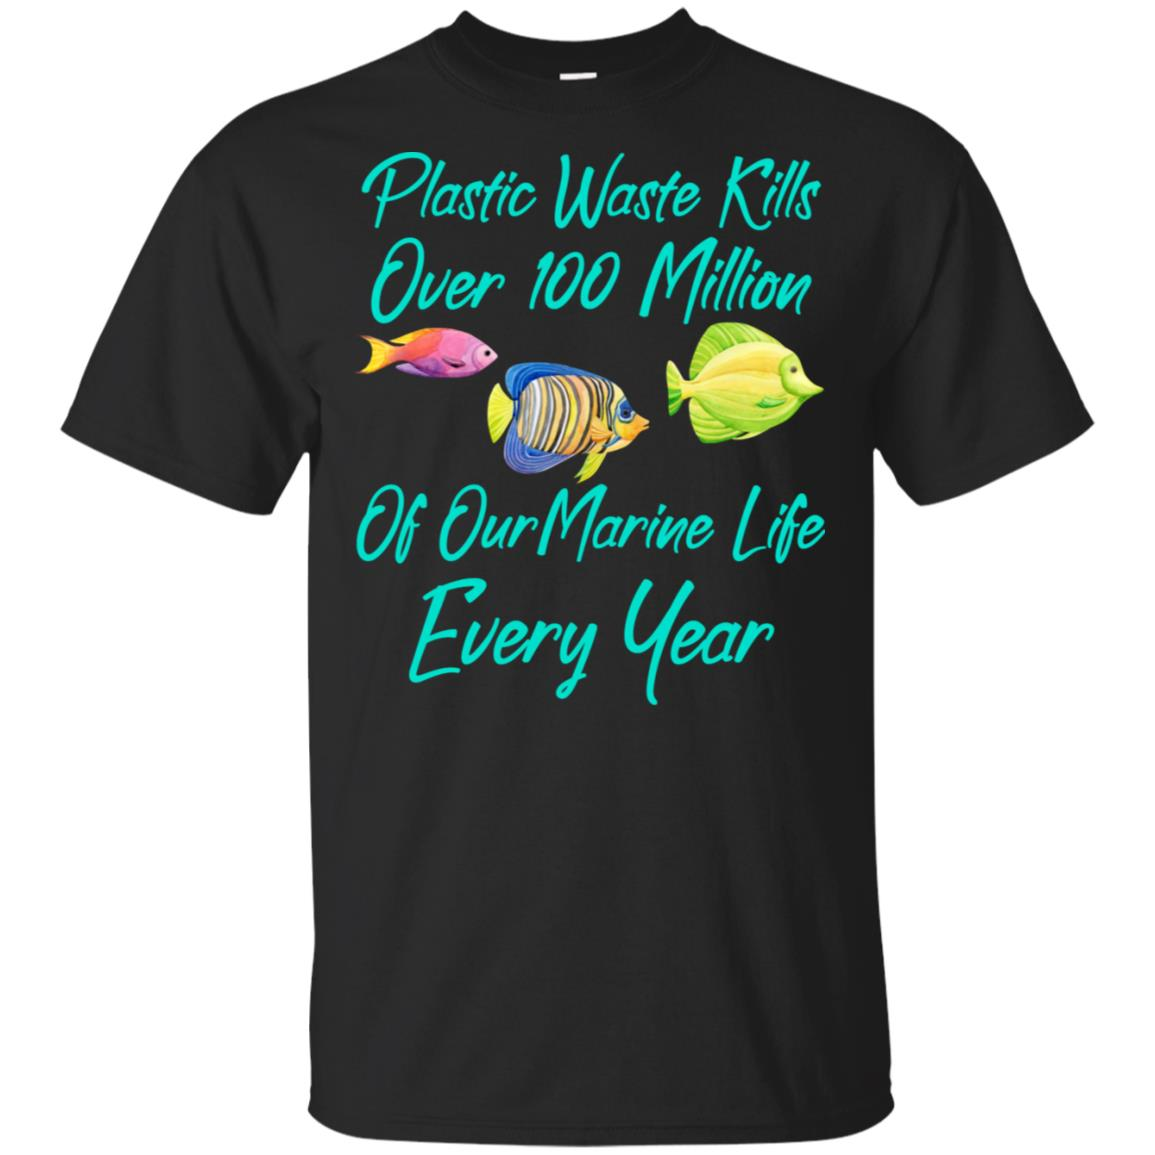 Stop Plastic Pollution Killing Sea Life Unisex Short Sleeve